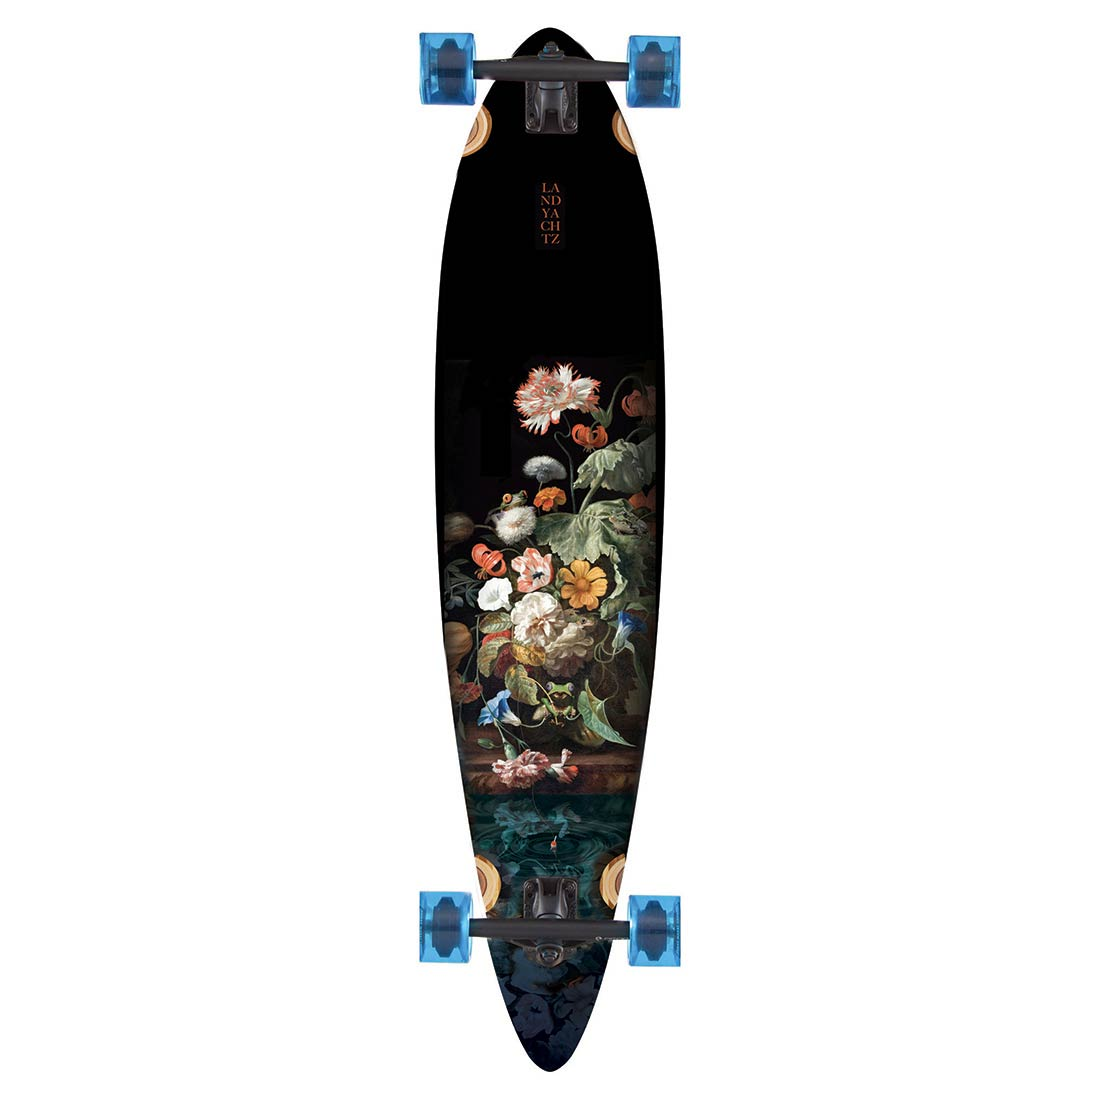 Buy Landyachtz Bamboo Pinner Night Moves Complete Canada Online Sales Vancouver Pickup